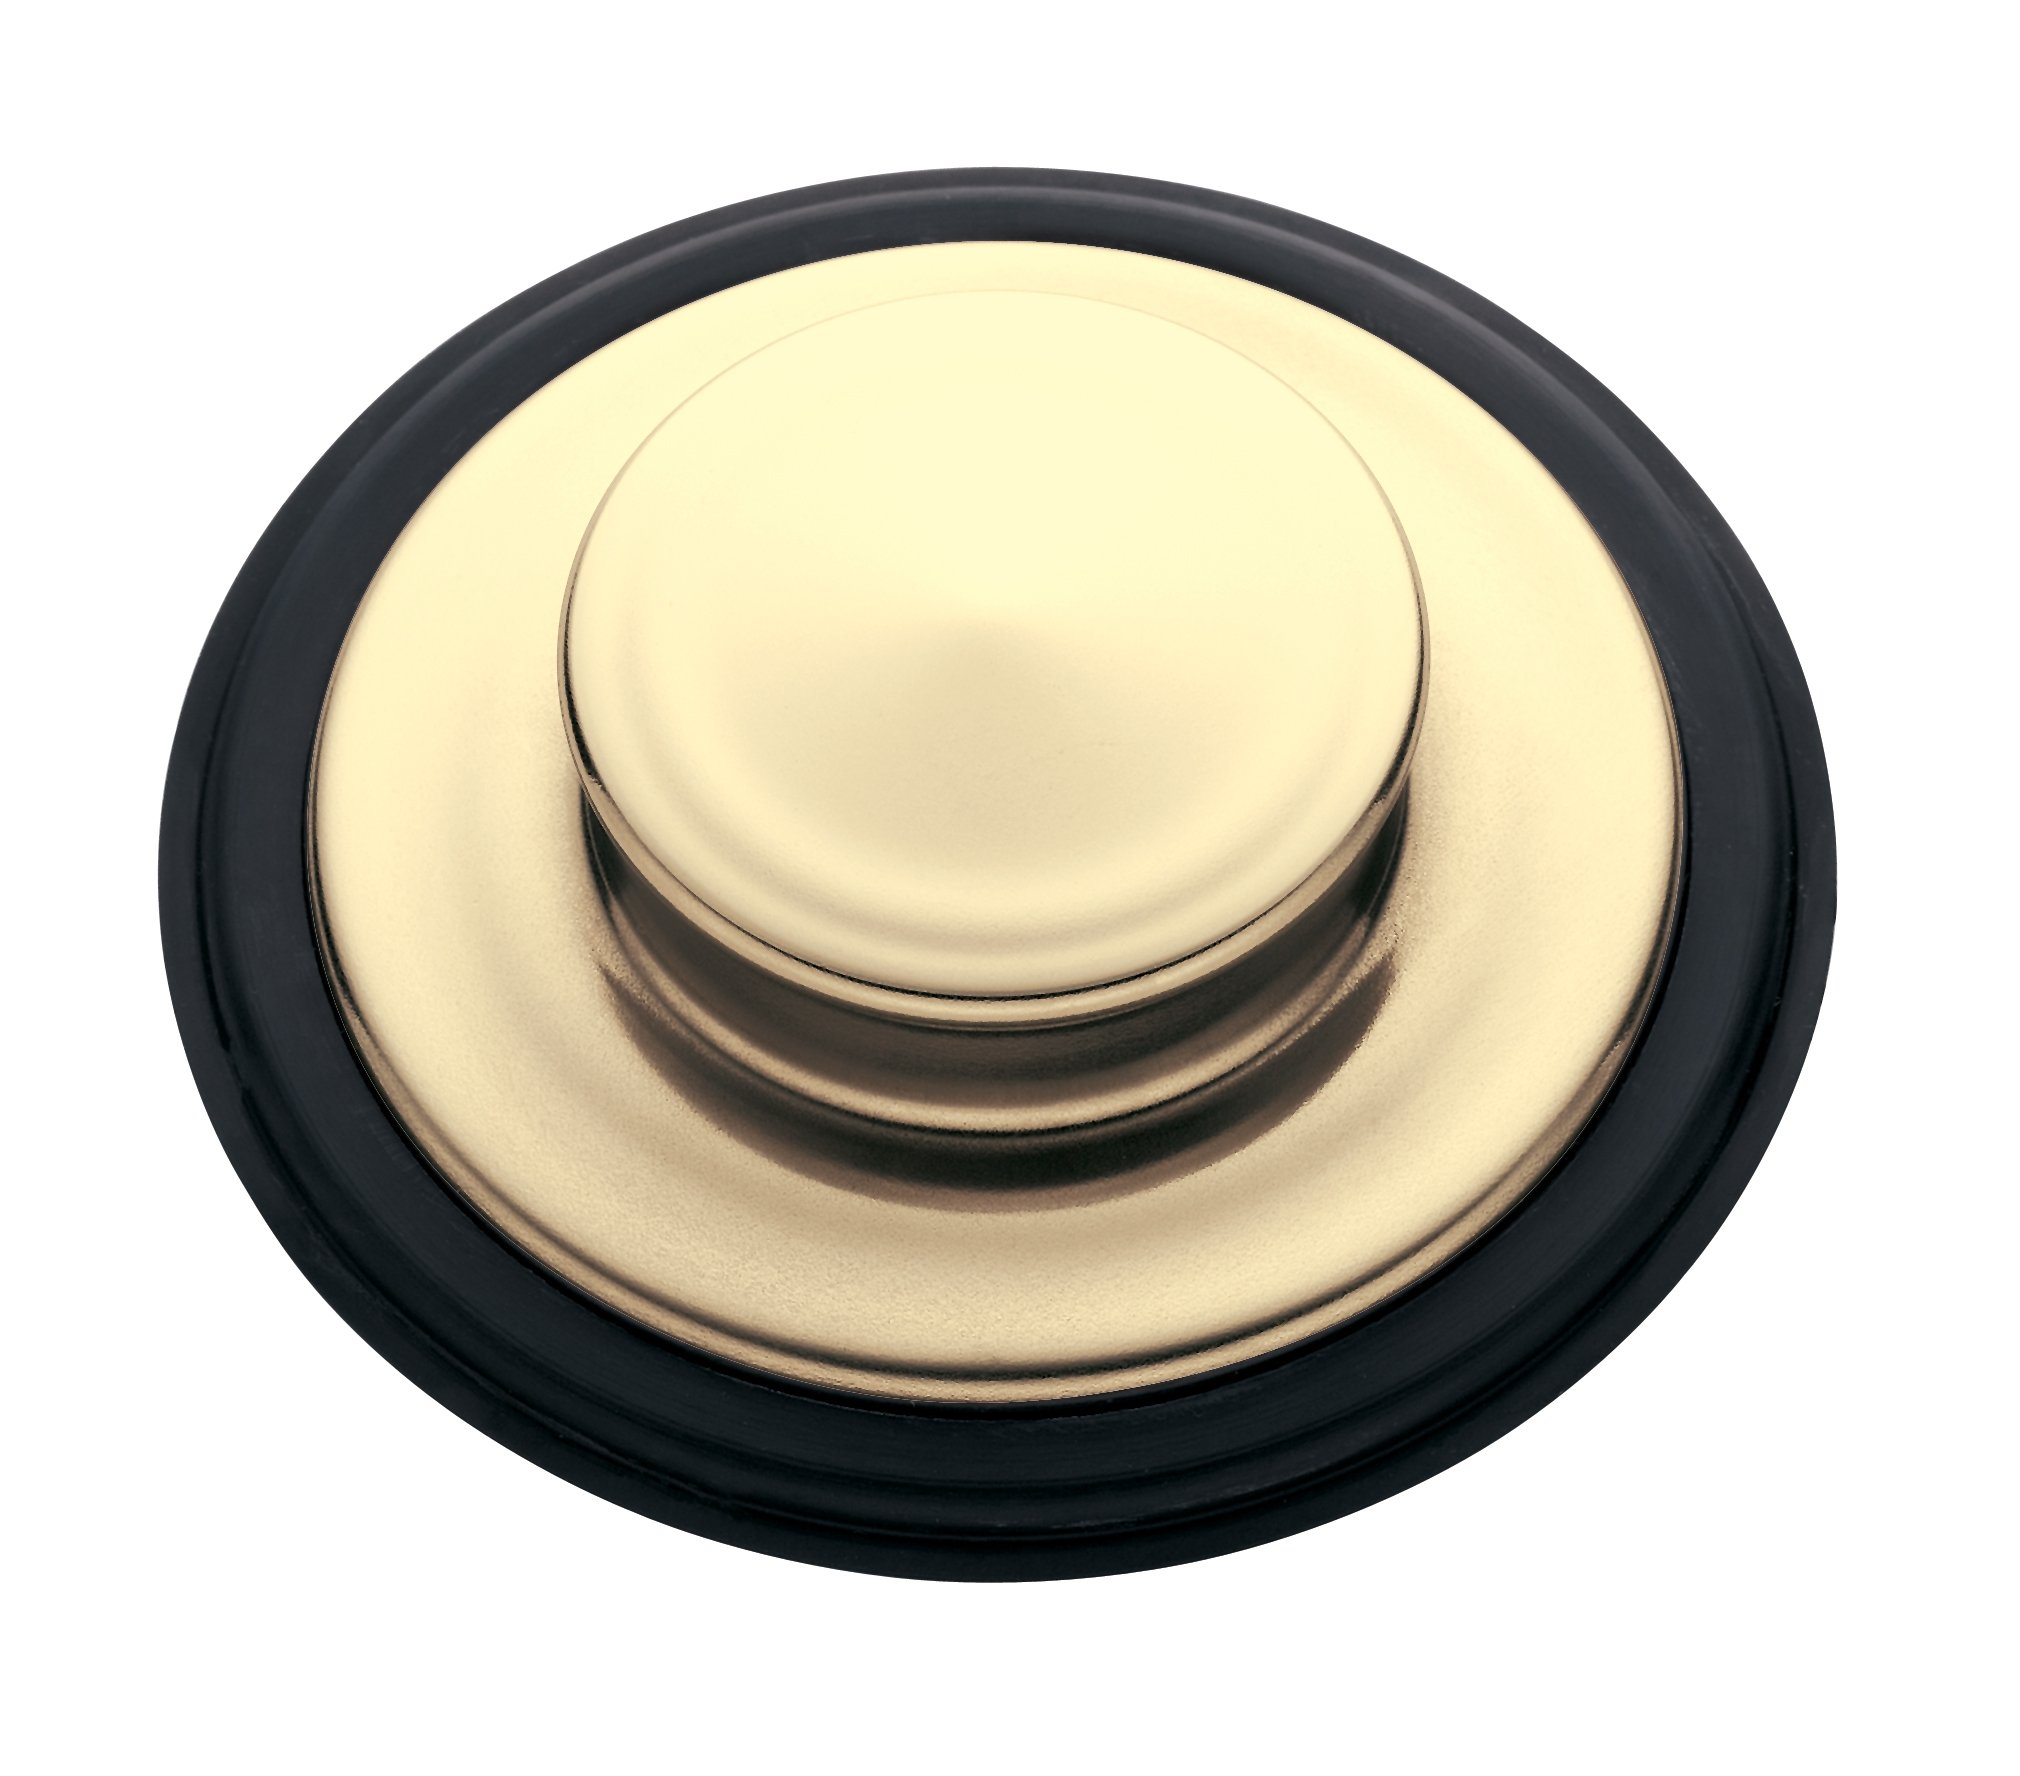 InSinkErator  STP-FG Sink Stopper for Garbage Disposals, French Gold by InSinkErator